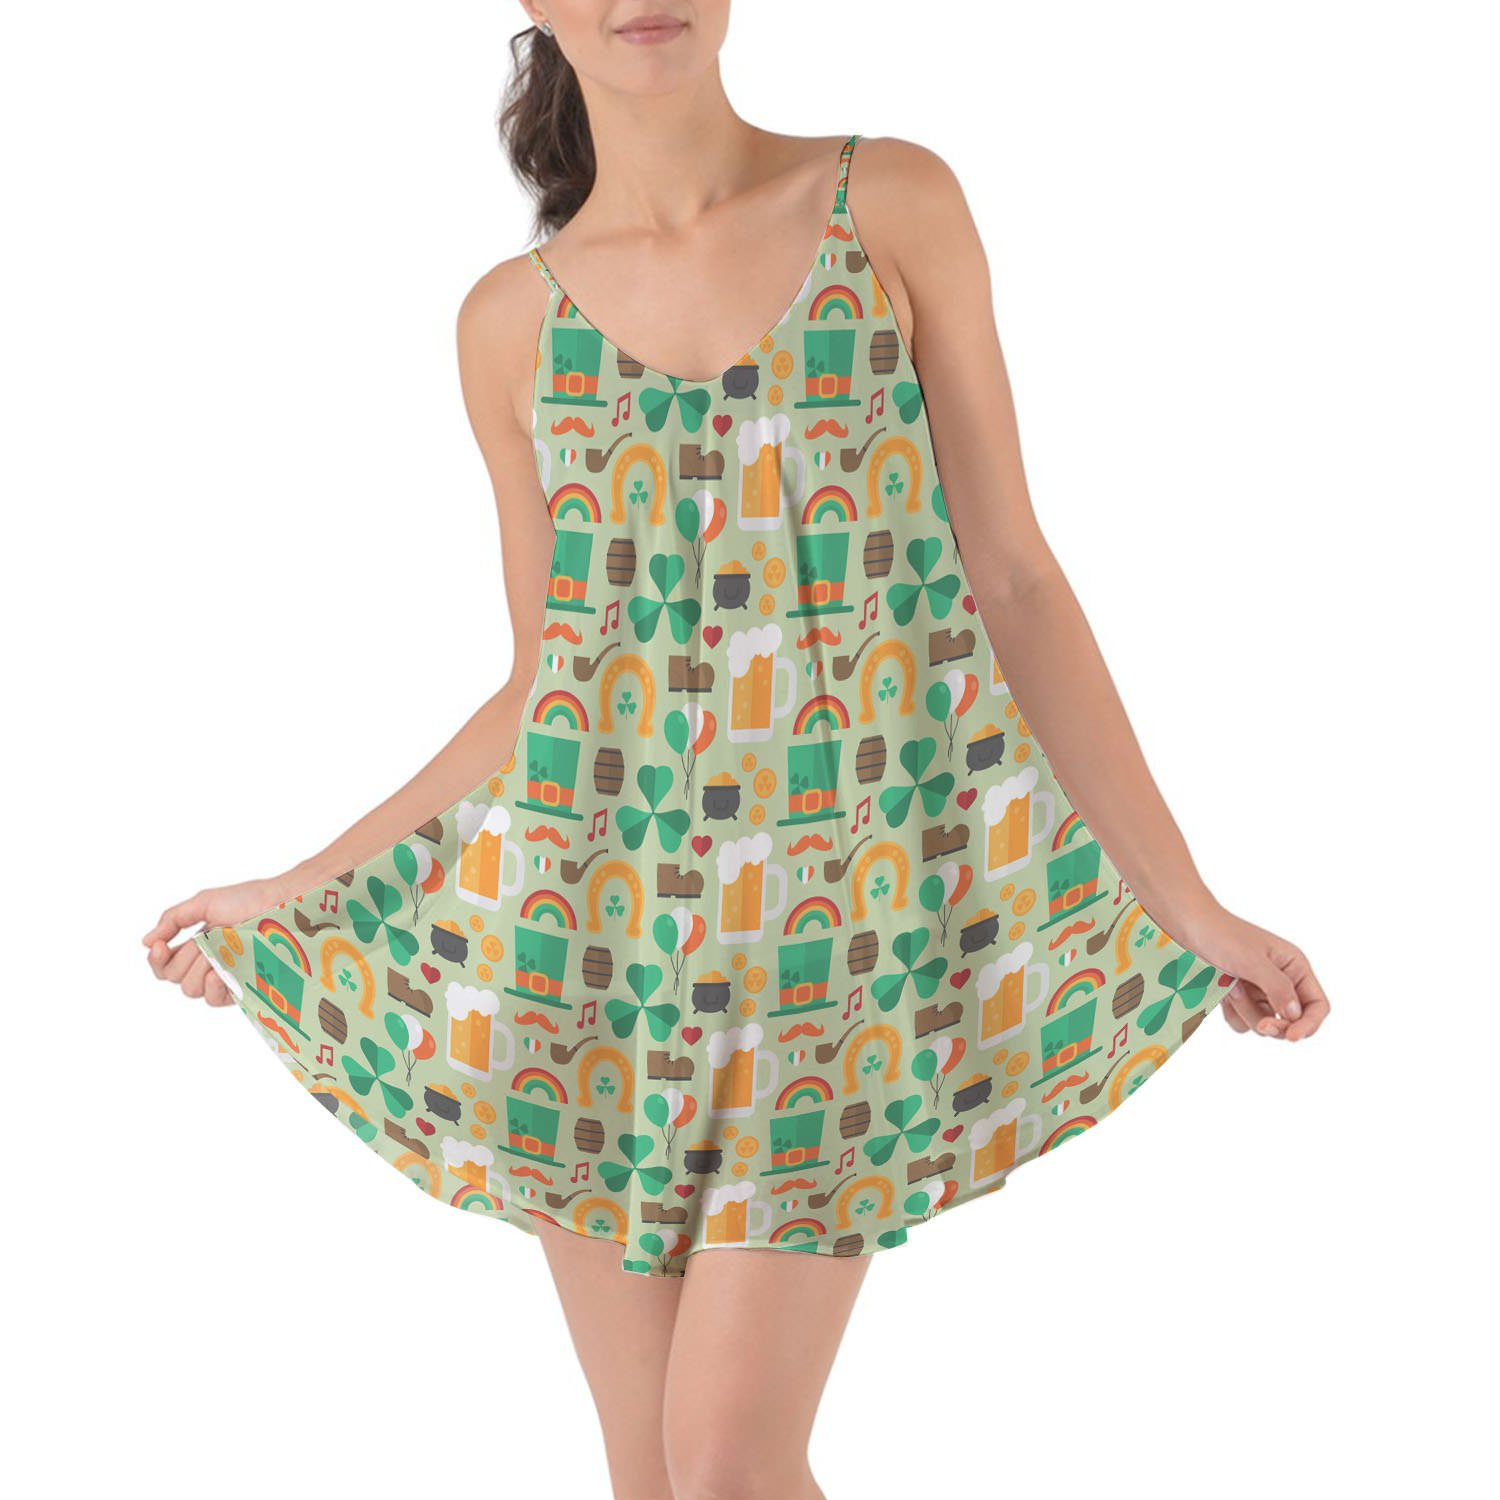 Queen of Cases Lucky ST Patricks Day Beach Cover Up Dress